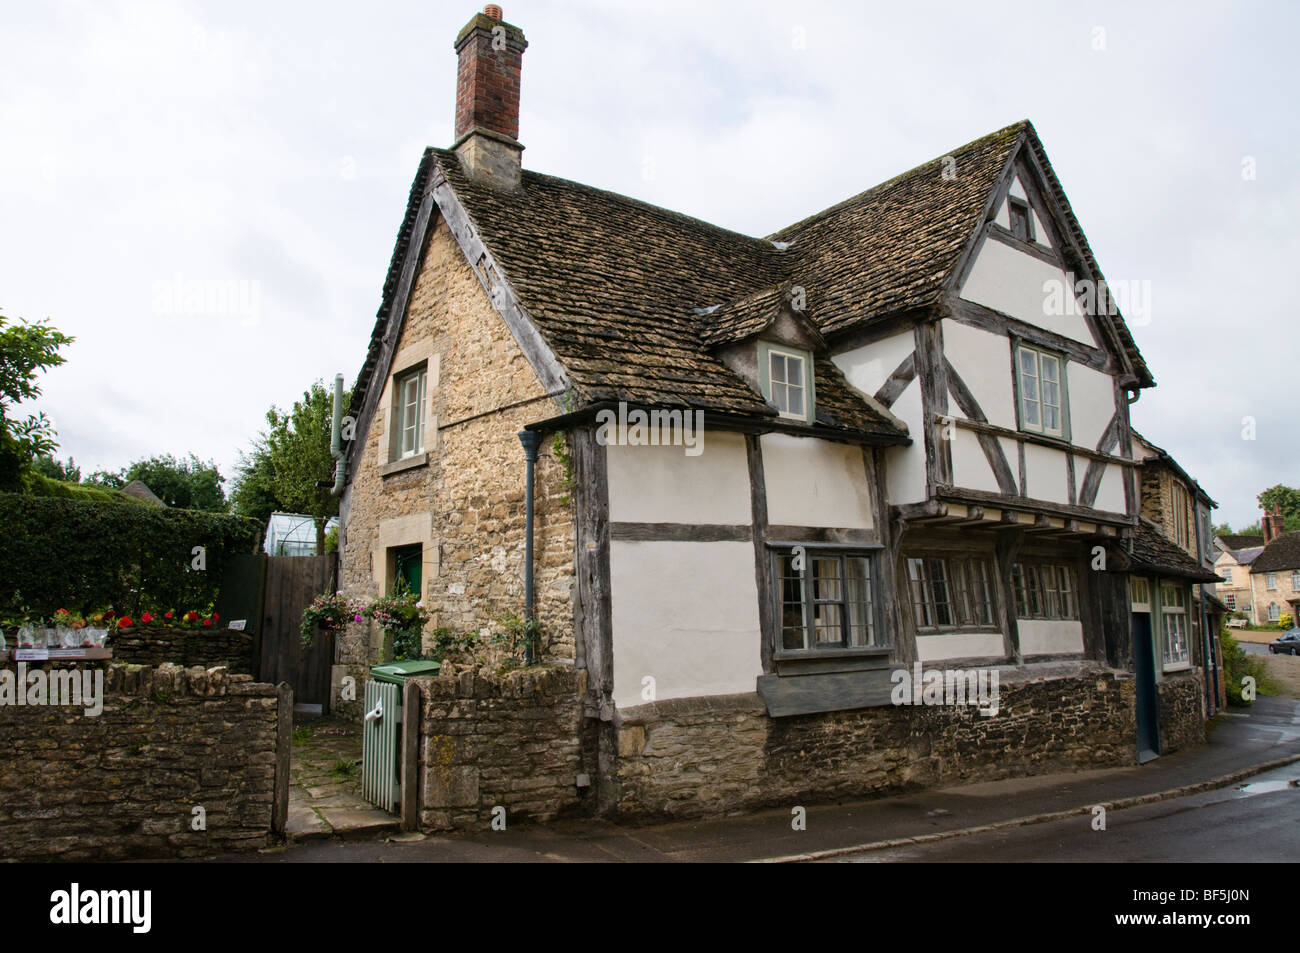 Half timber frame house, Lacock, Wiltshire, Cotswolds, UK